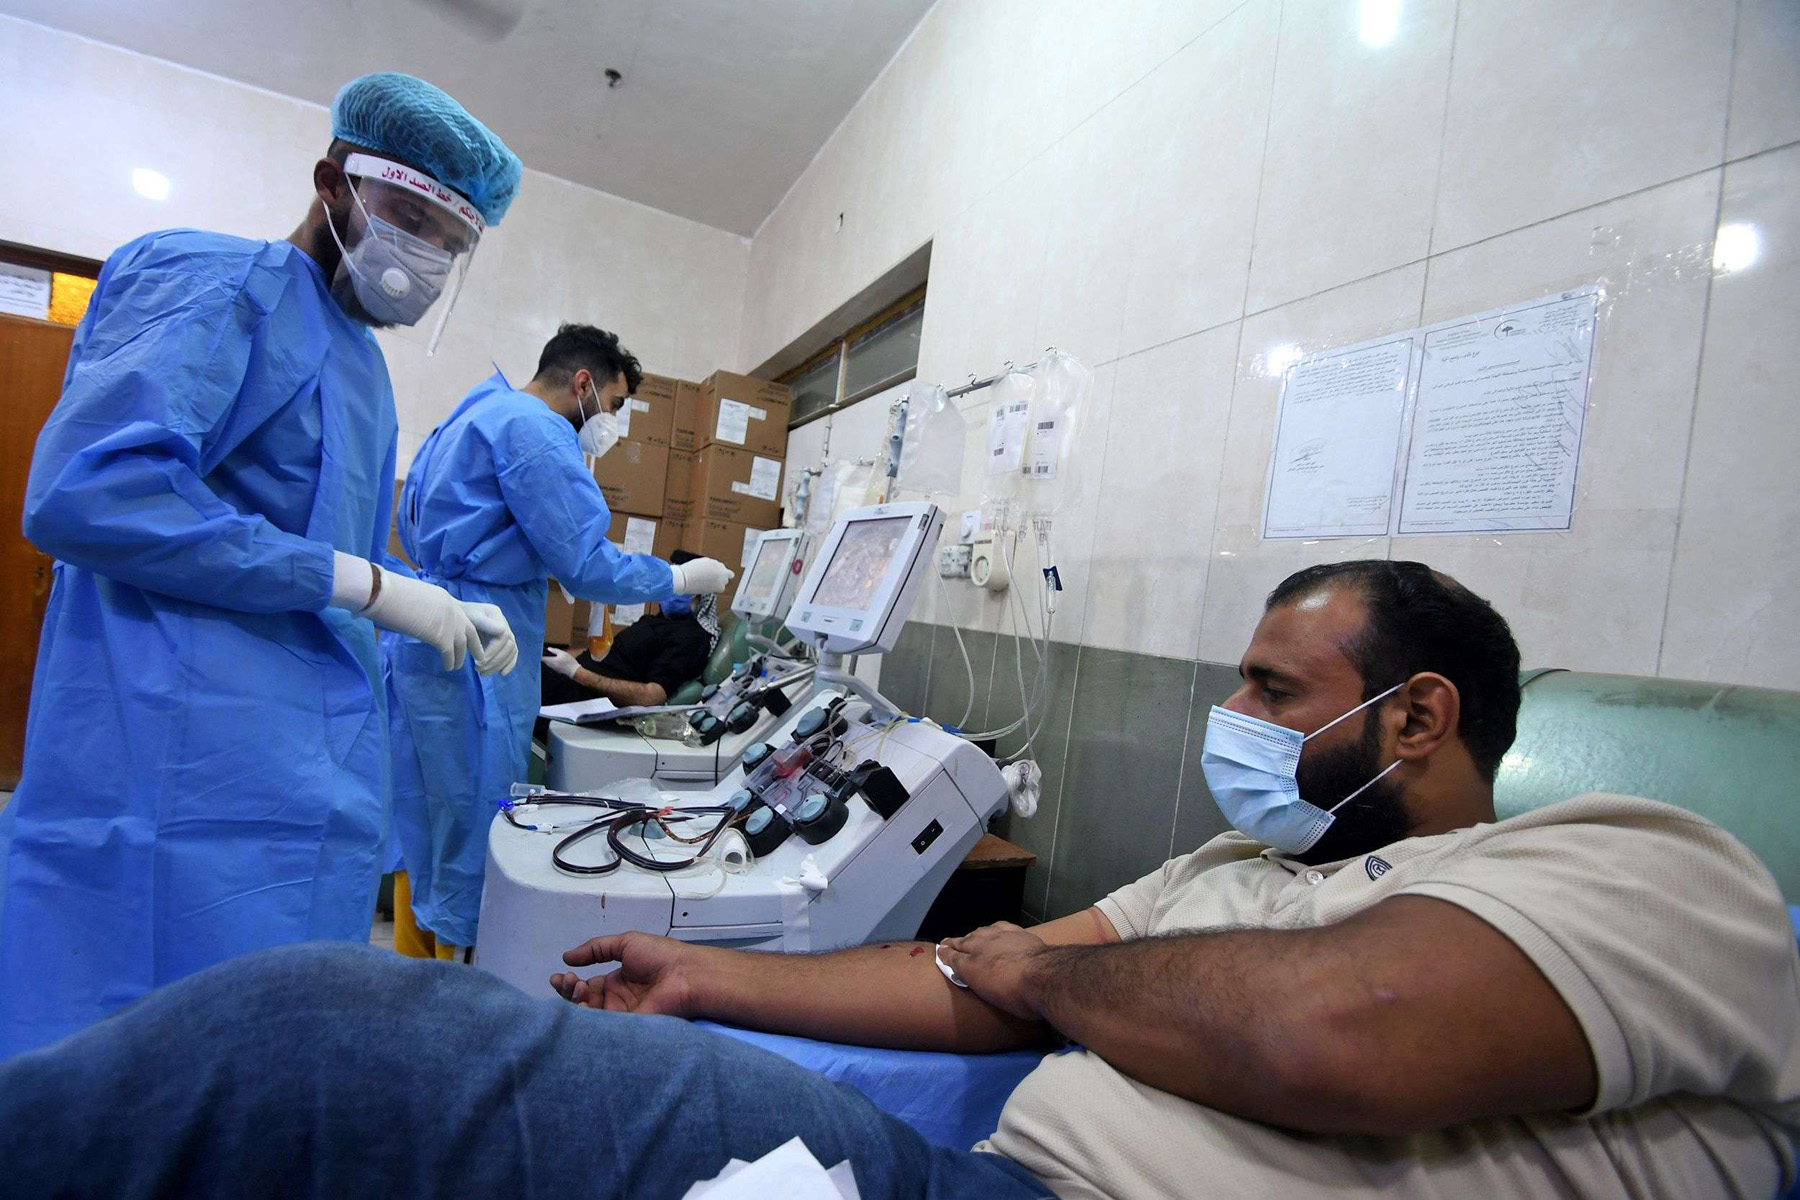 Iraqi phlebotomists draw blood plasma from recovered COVID-19 patients at the blood bank of Iraq's southern city of Nasiriyah in Dhi Qar province. (AFP)